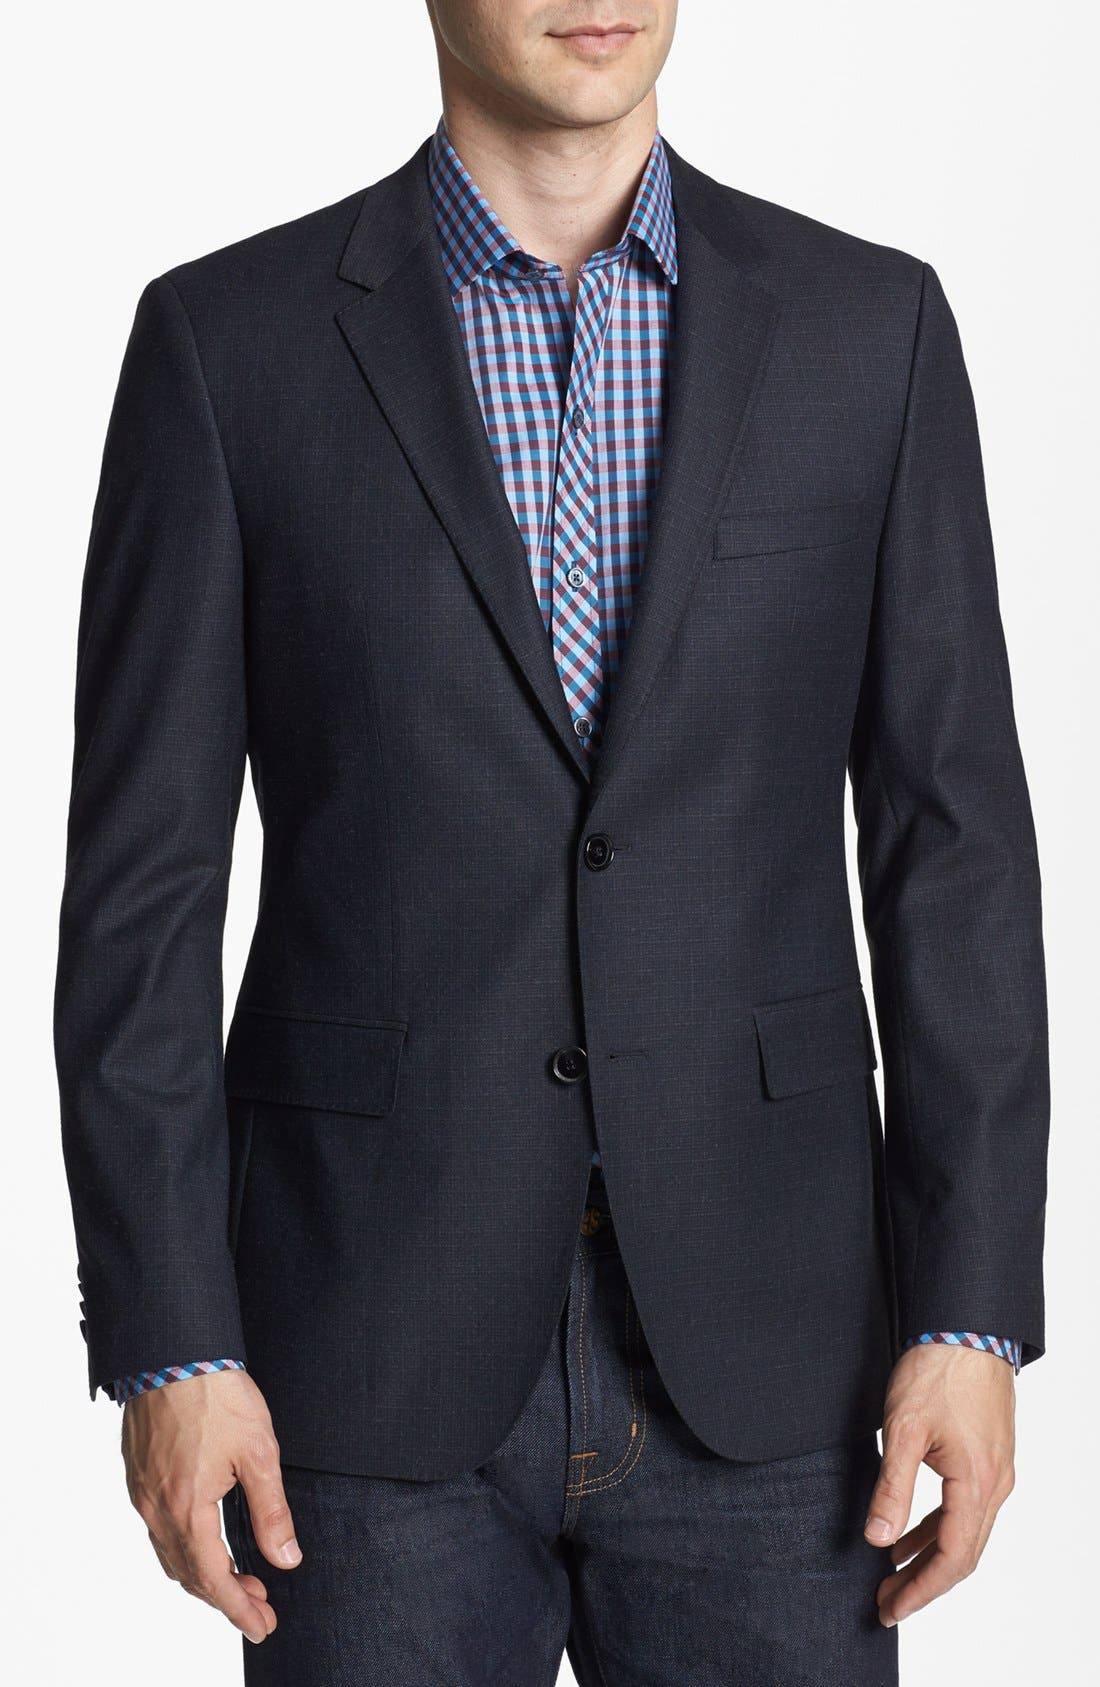 Alternate Image 1 Selected - BOSS HUGO BOSS 'Coast Us' Mélange Check Sportcoat